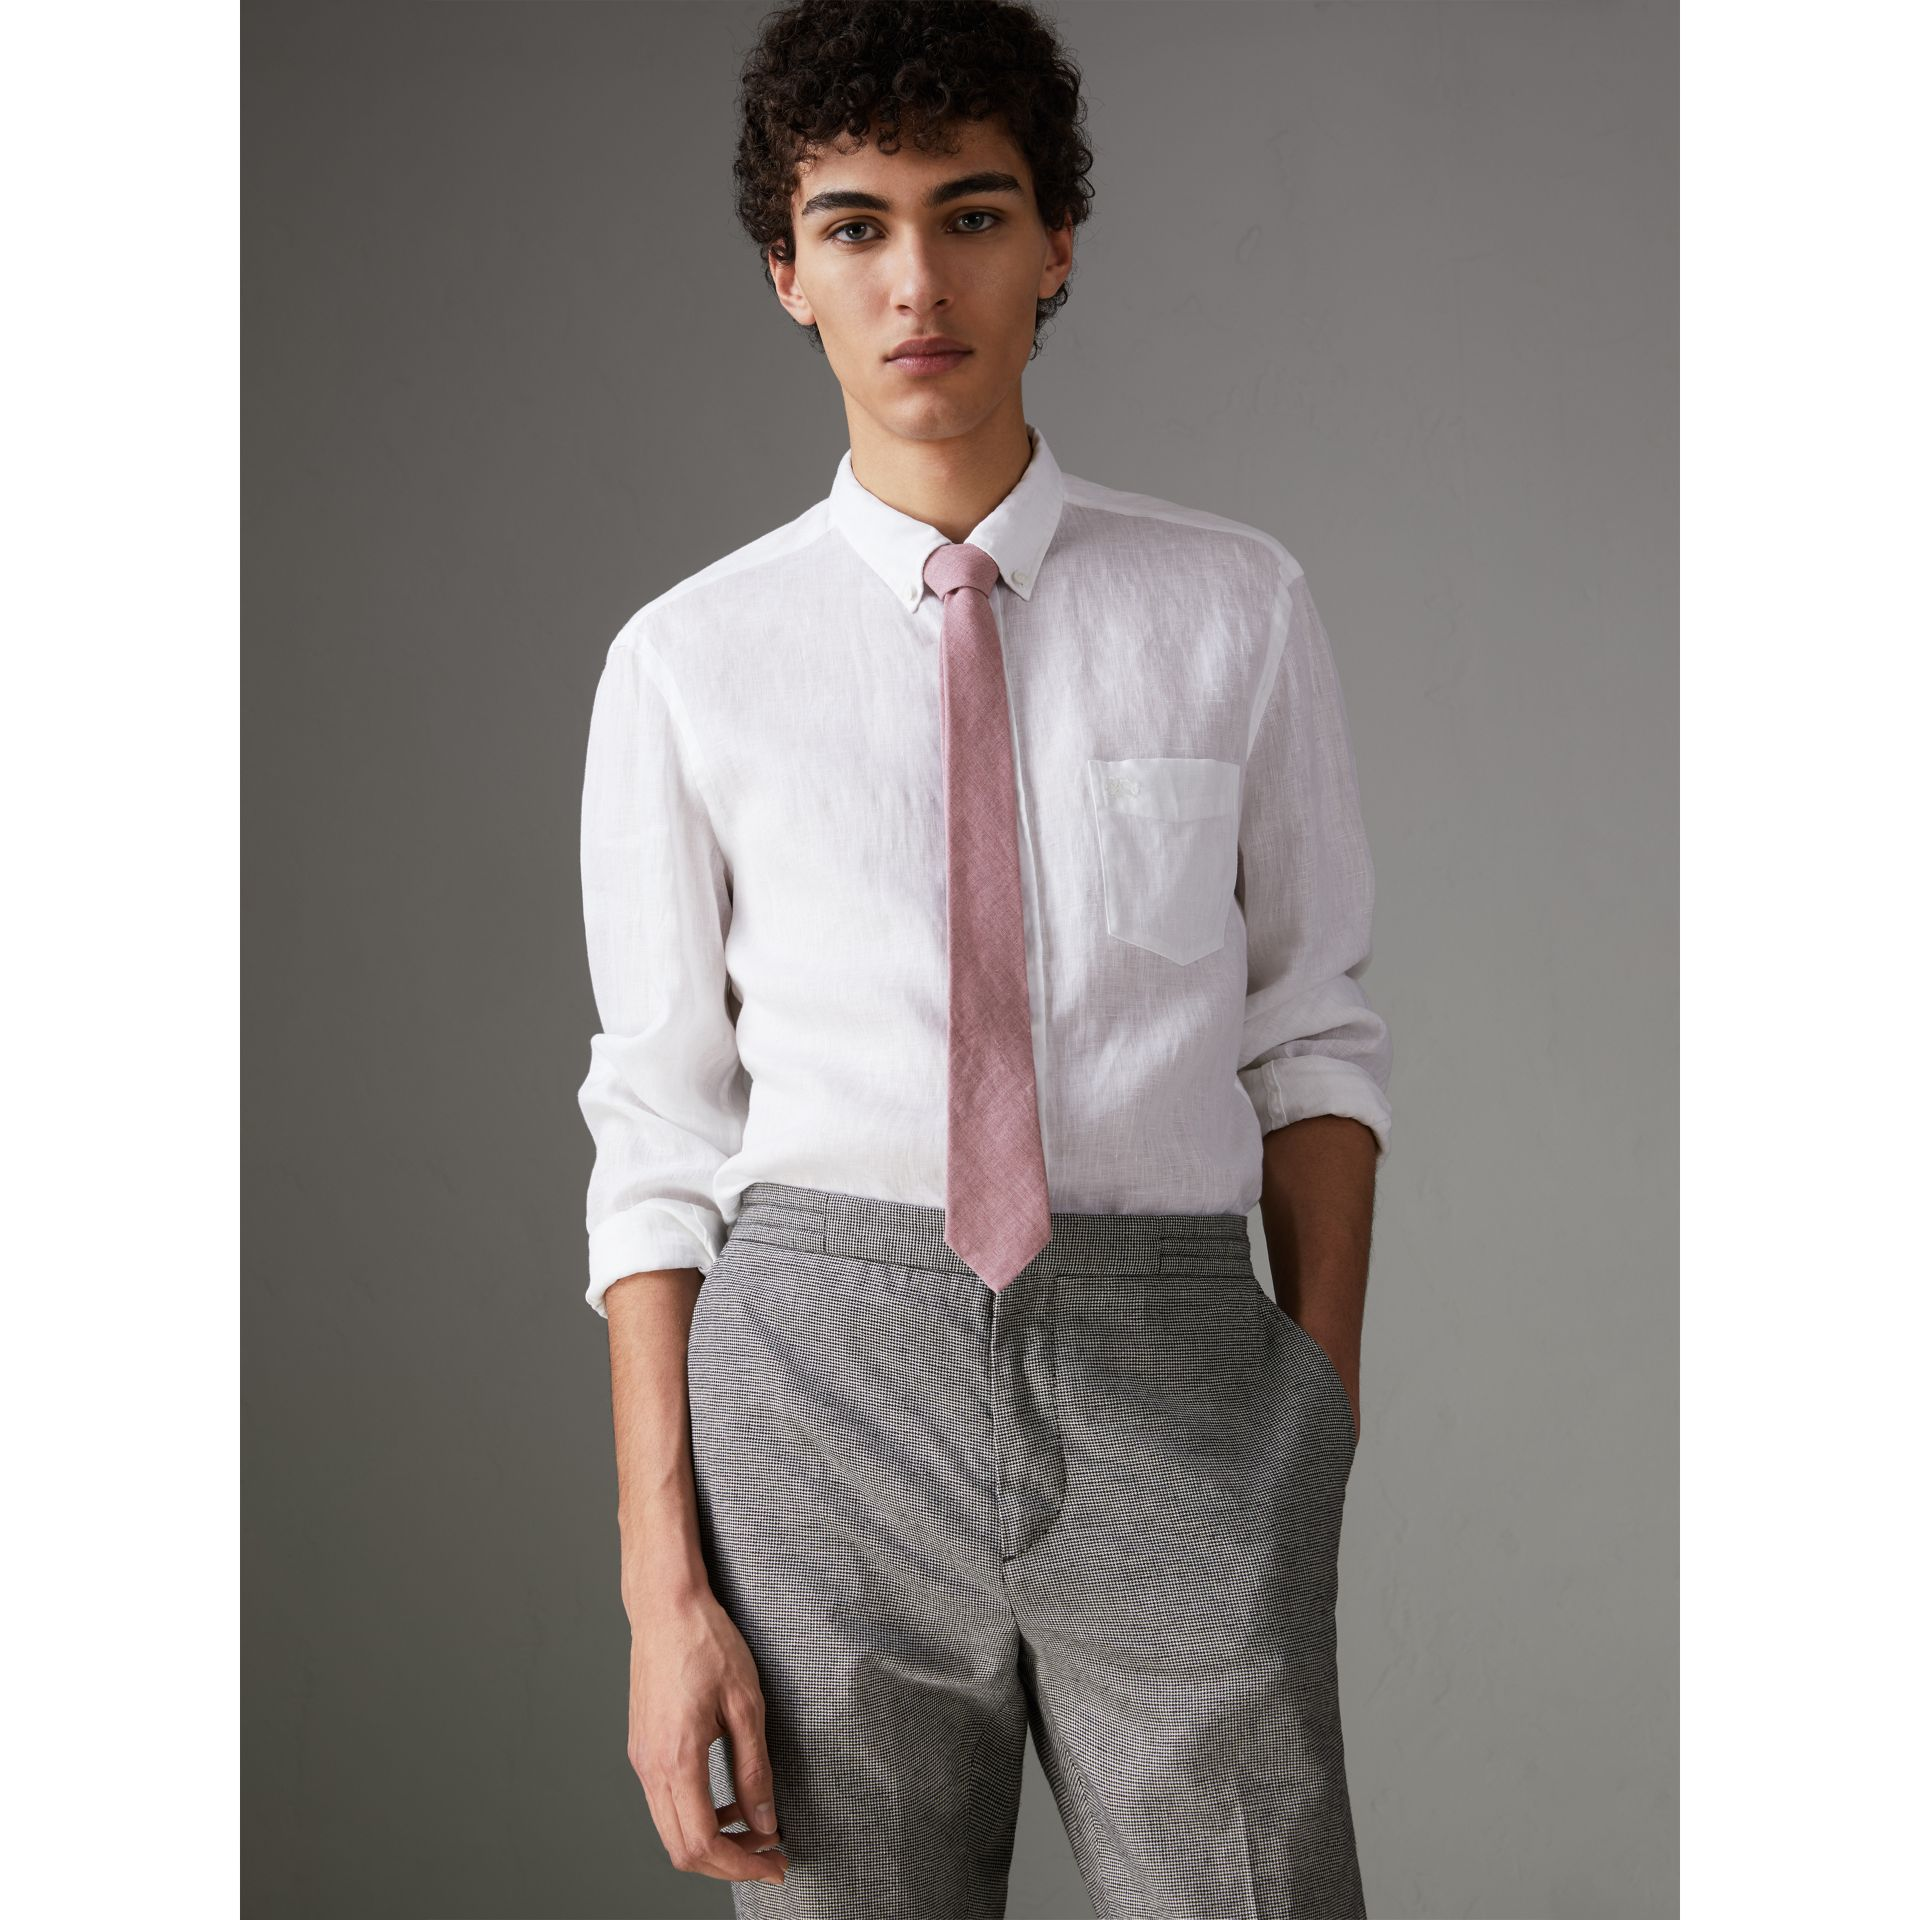 Slim Cut Linen Tie in Pink Heather - Men | Burberry Singapore - gallery image 3